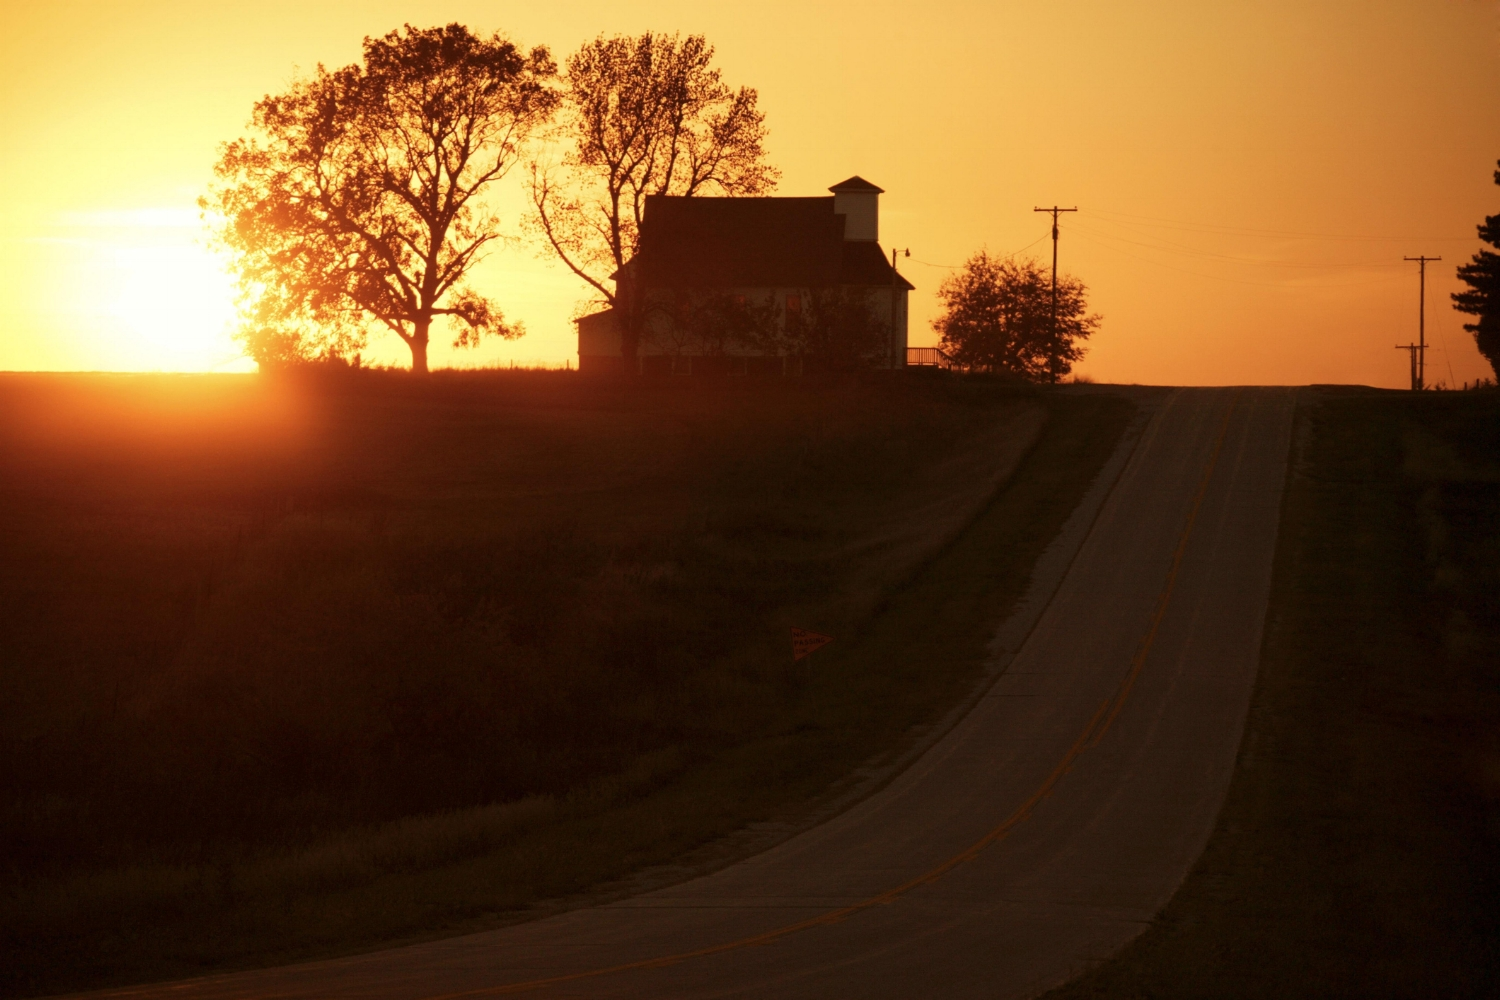 a sunrise marketing photo of a farmhouse basking in the morning glow of the sun on it's 30+ acres of land.